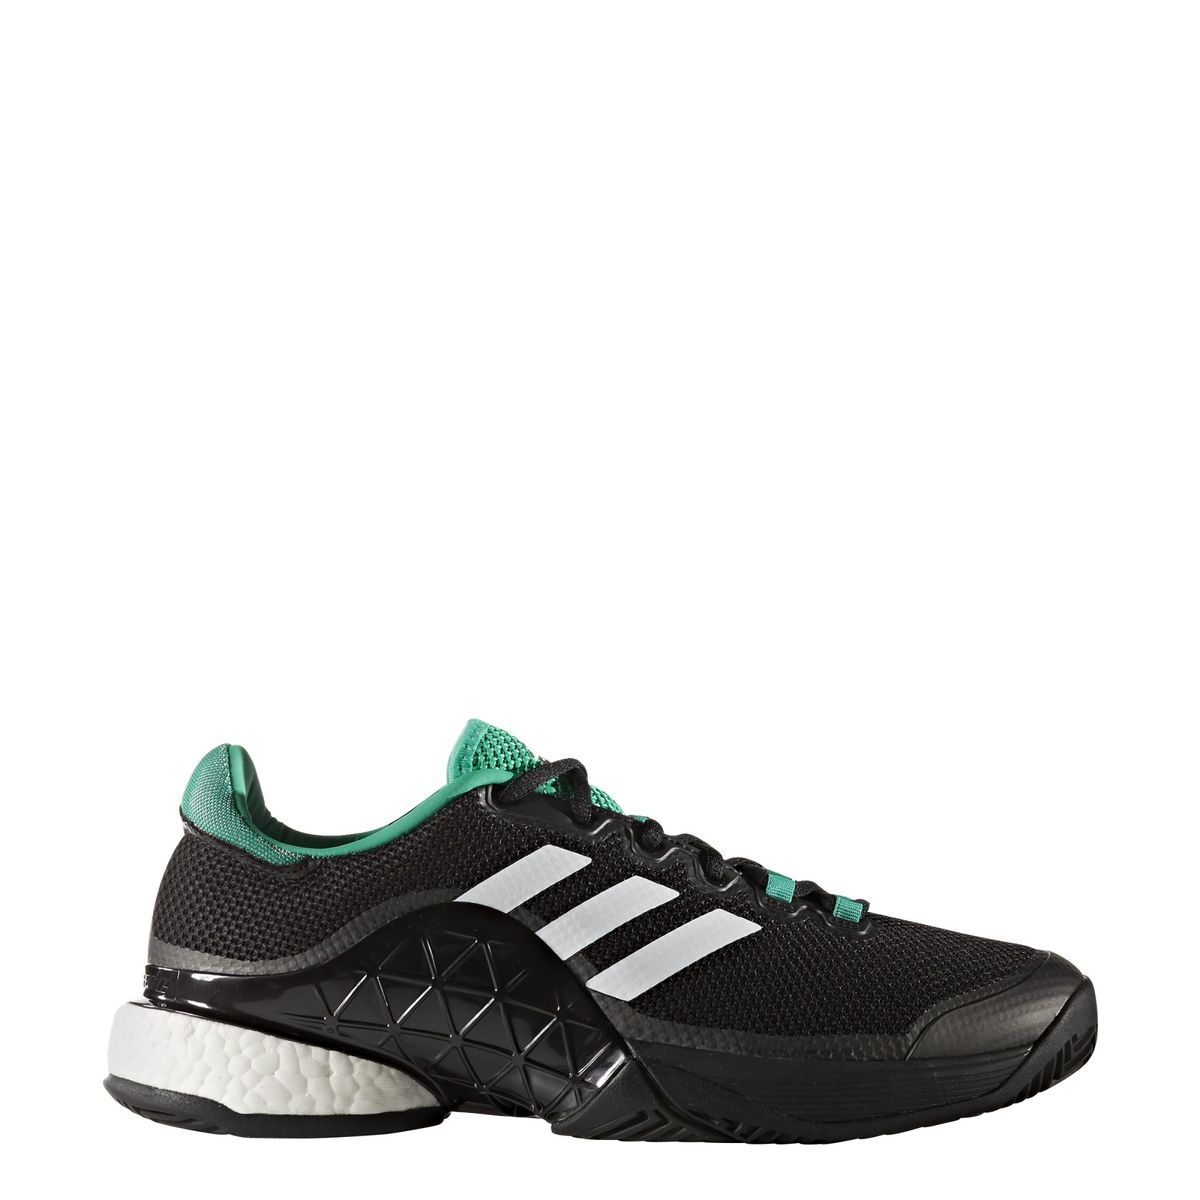 Tennis Shoes Online South Africa